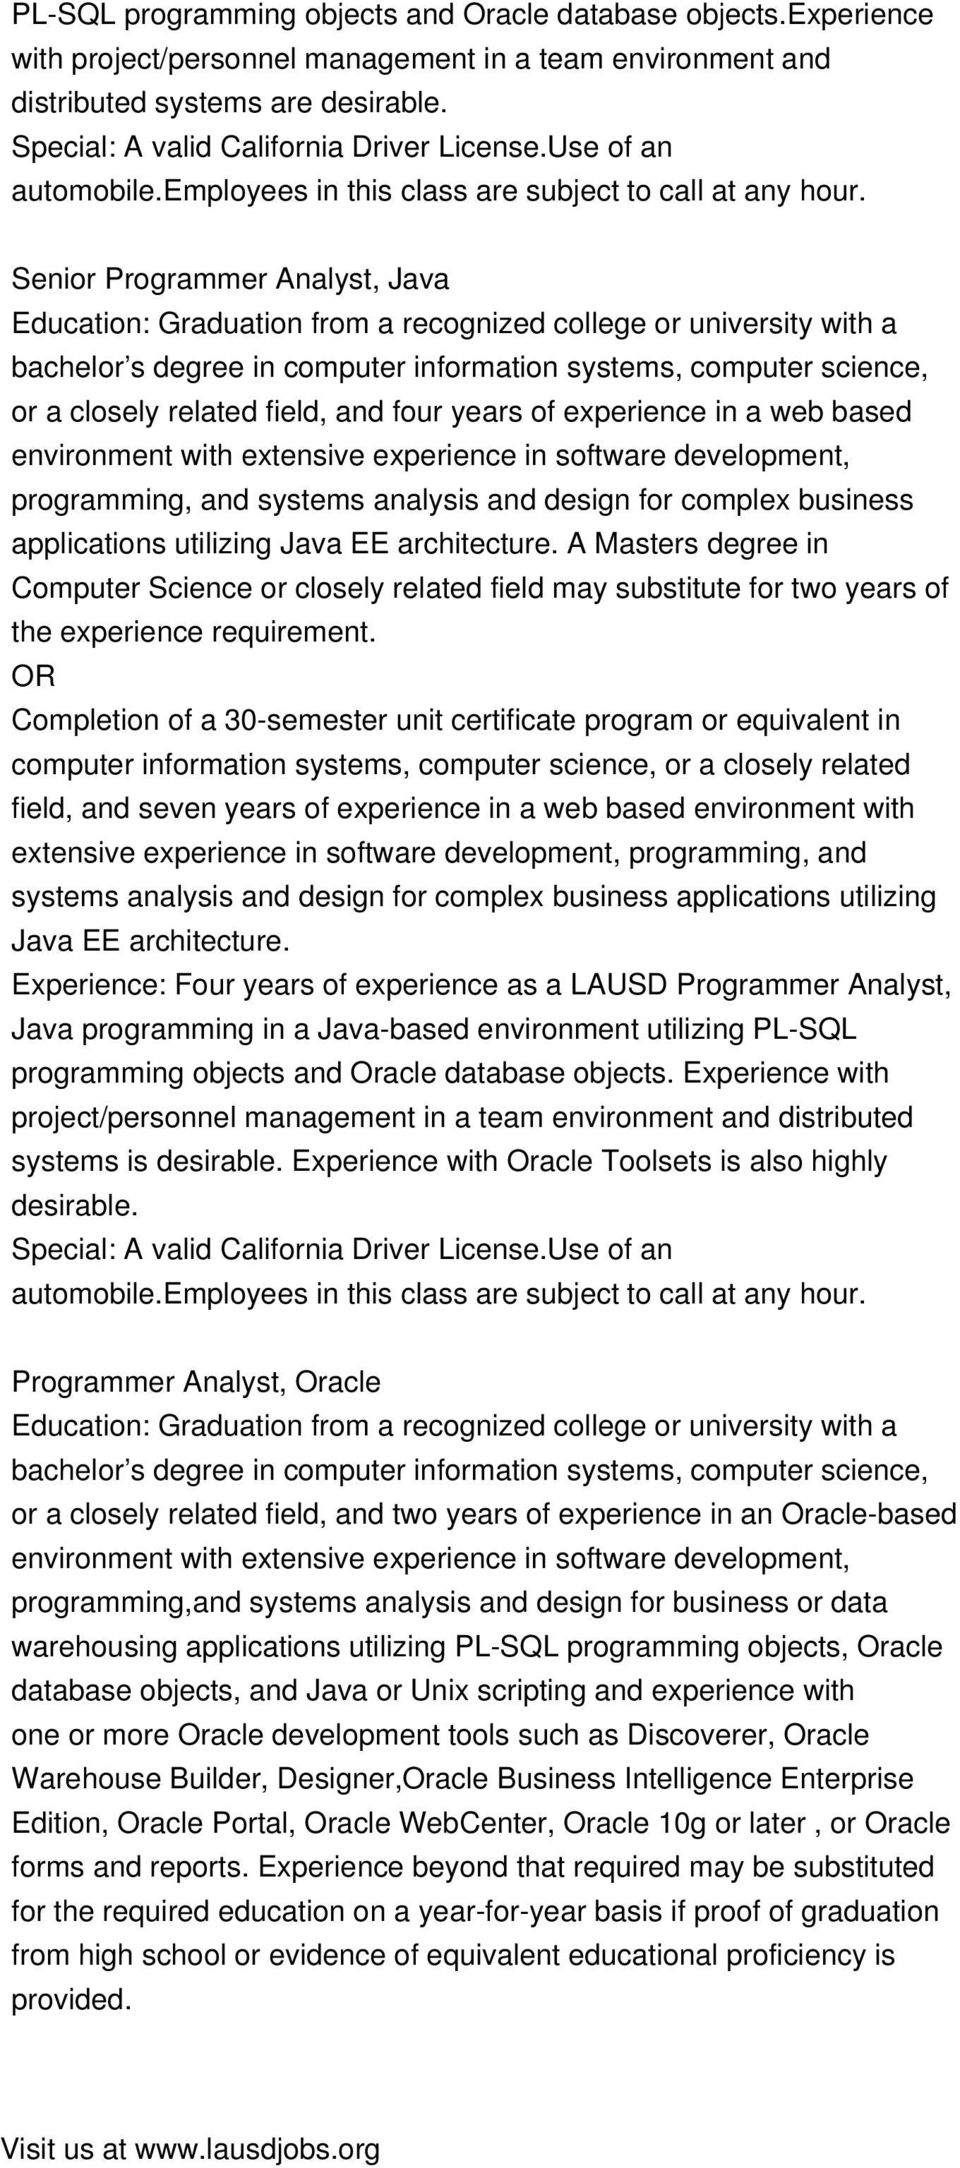 Senior Programmer Analyst, Java bachelor s degree in computer information systems, computer science, or a closely related field, and four years of experience in a web based environment with extensive